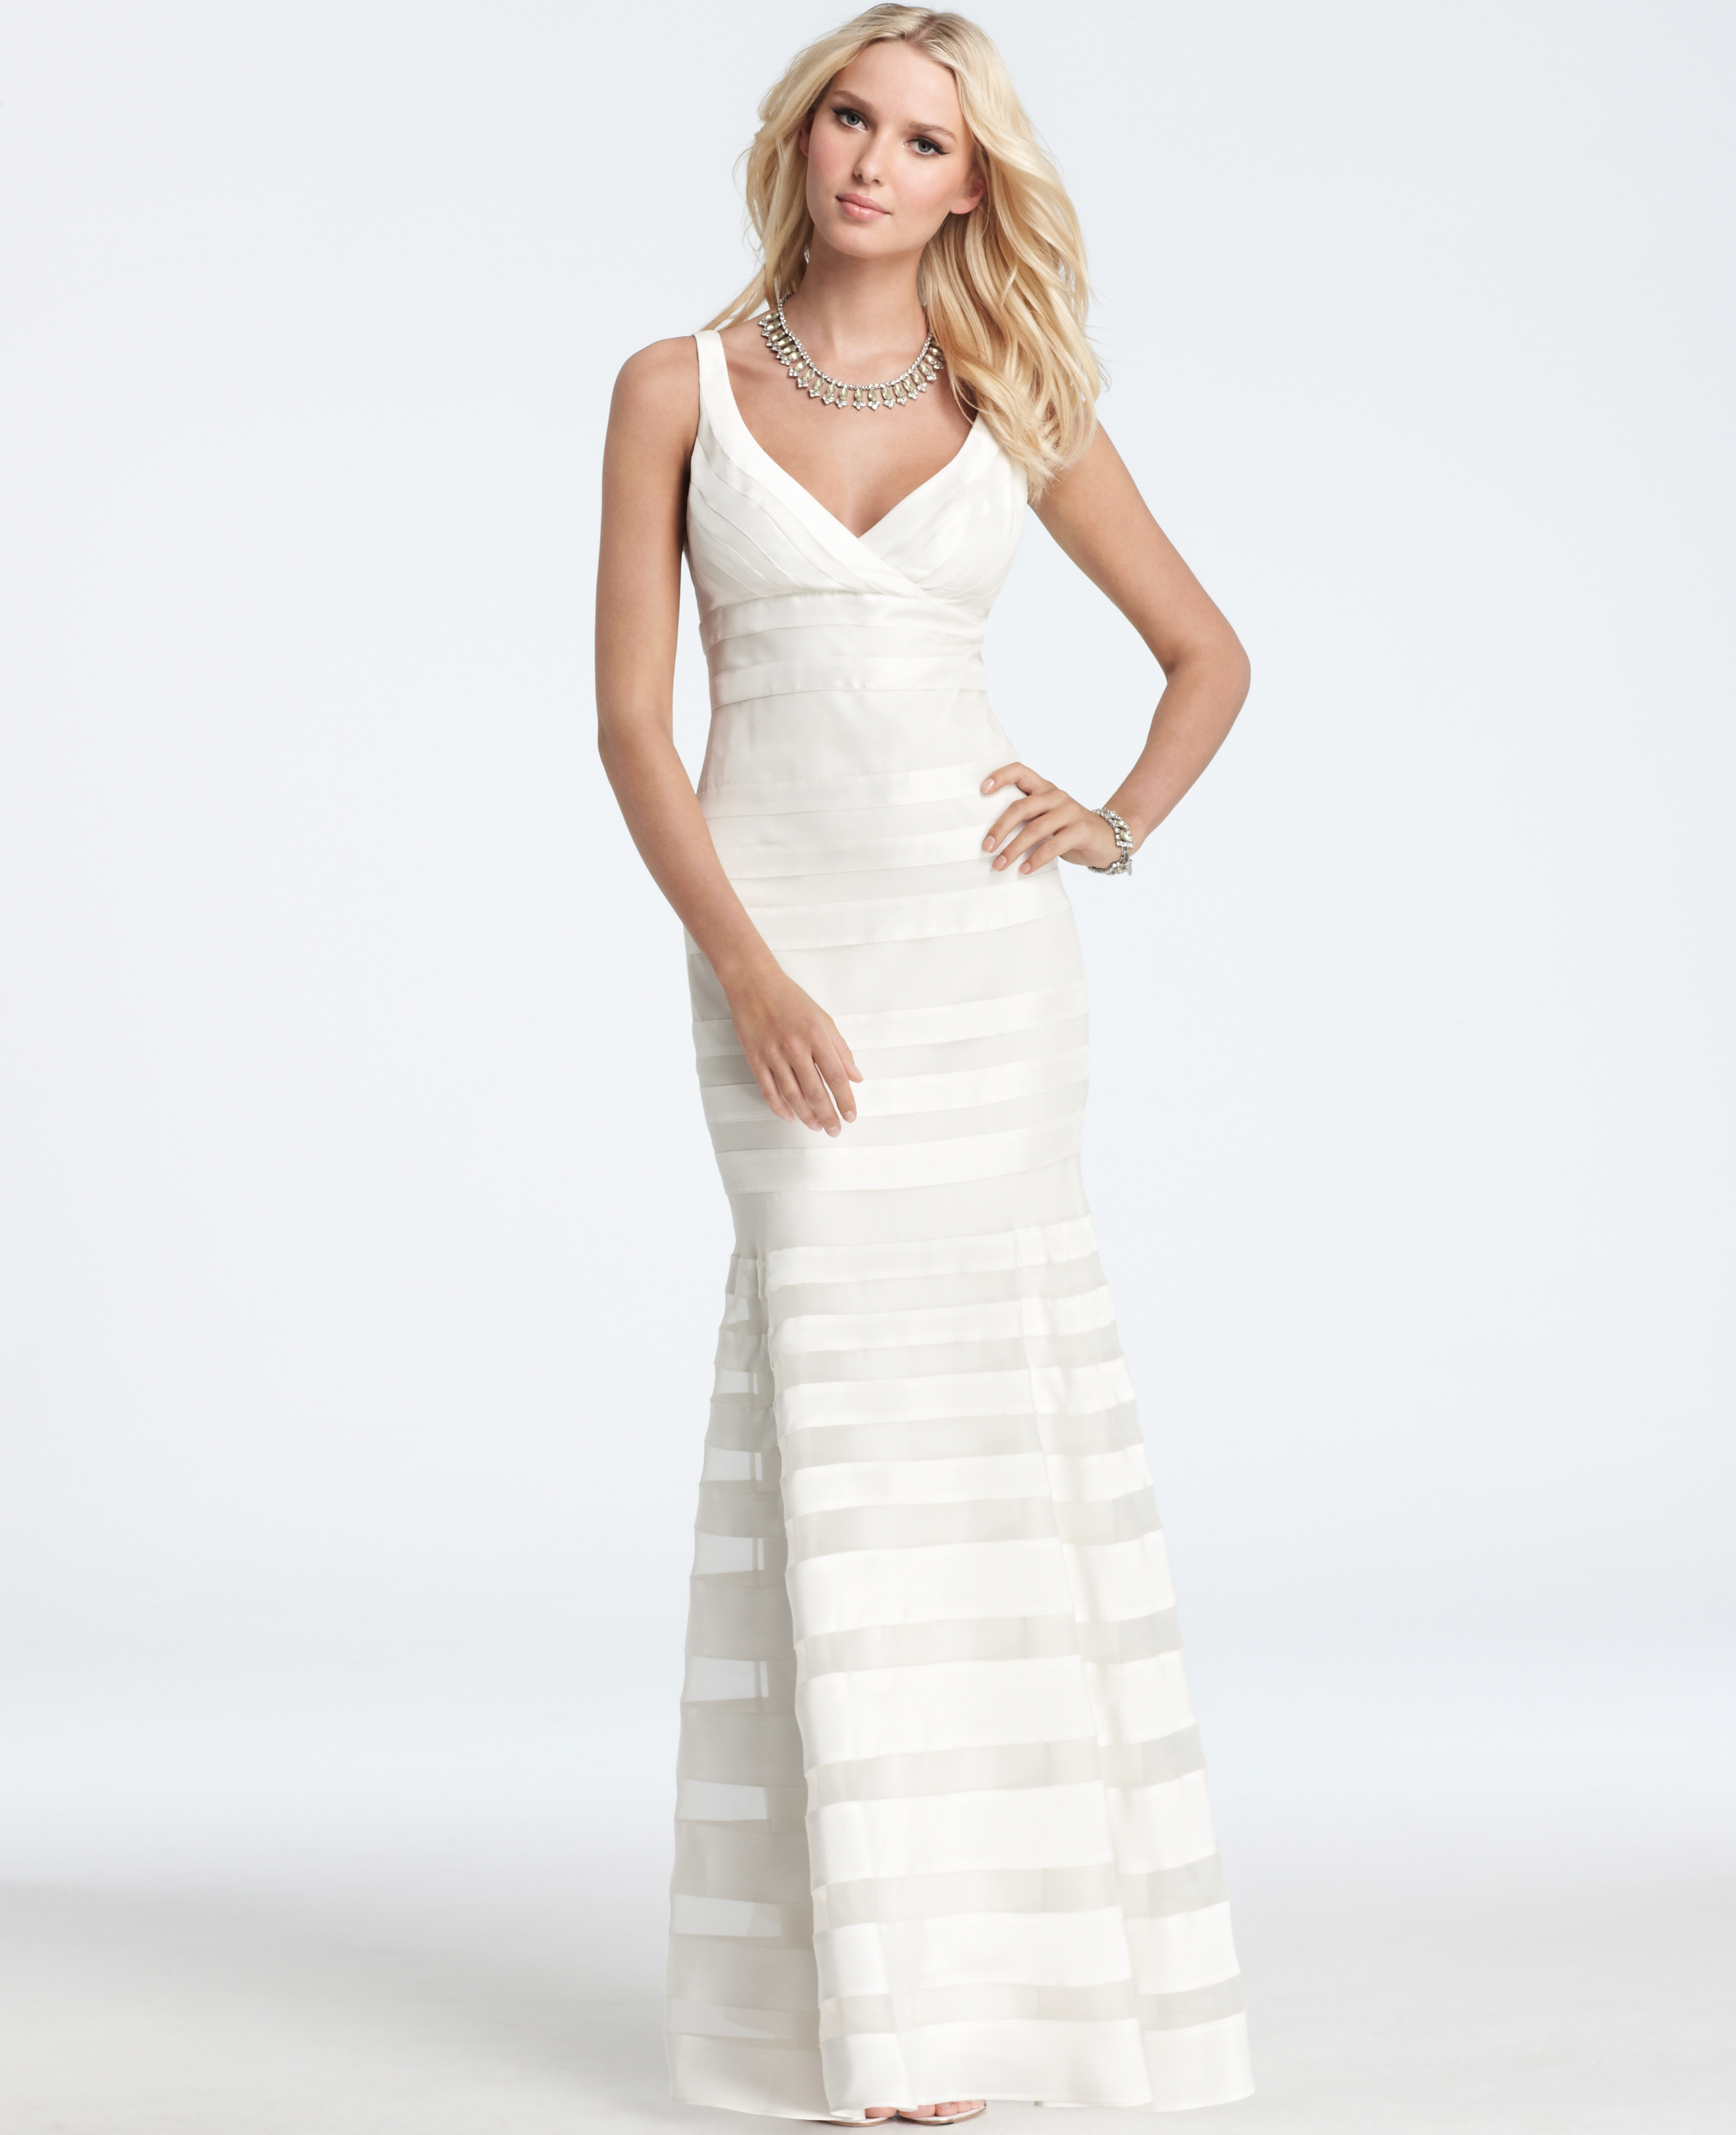 Lyst - Ann Taylor Silk Georgette Mermaid Wedding Dress in White